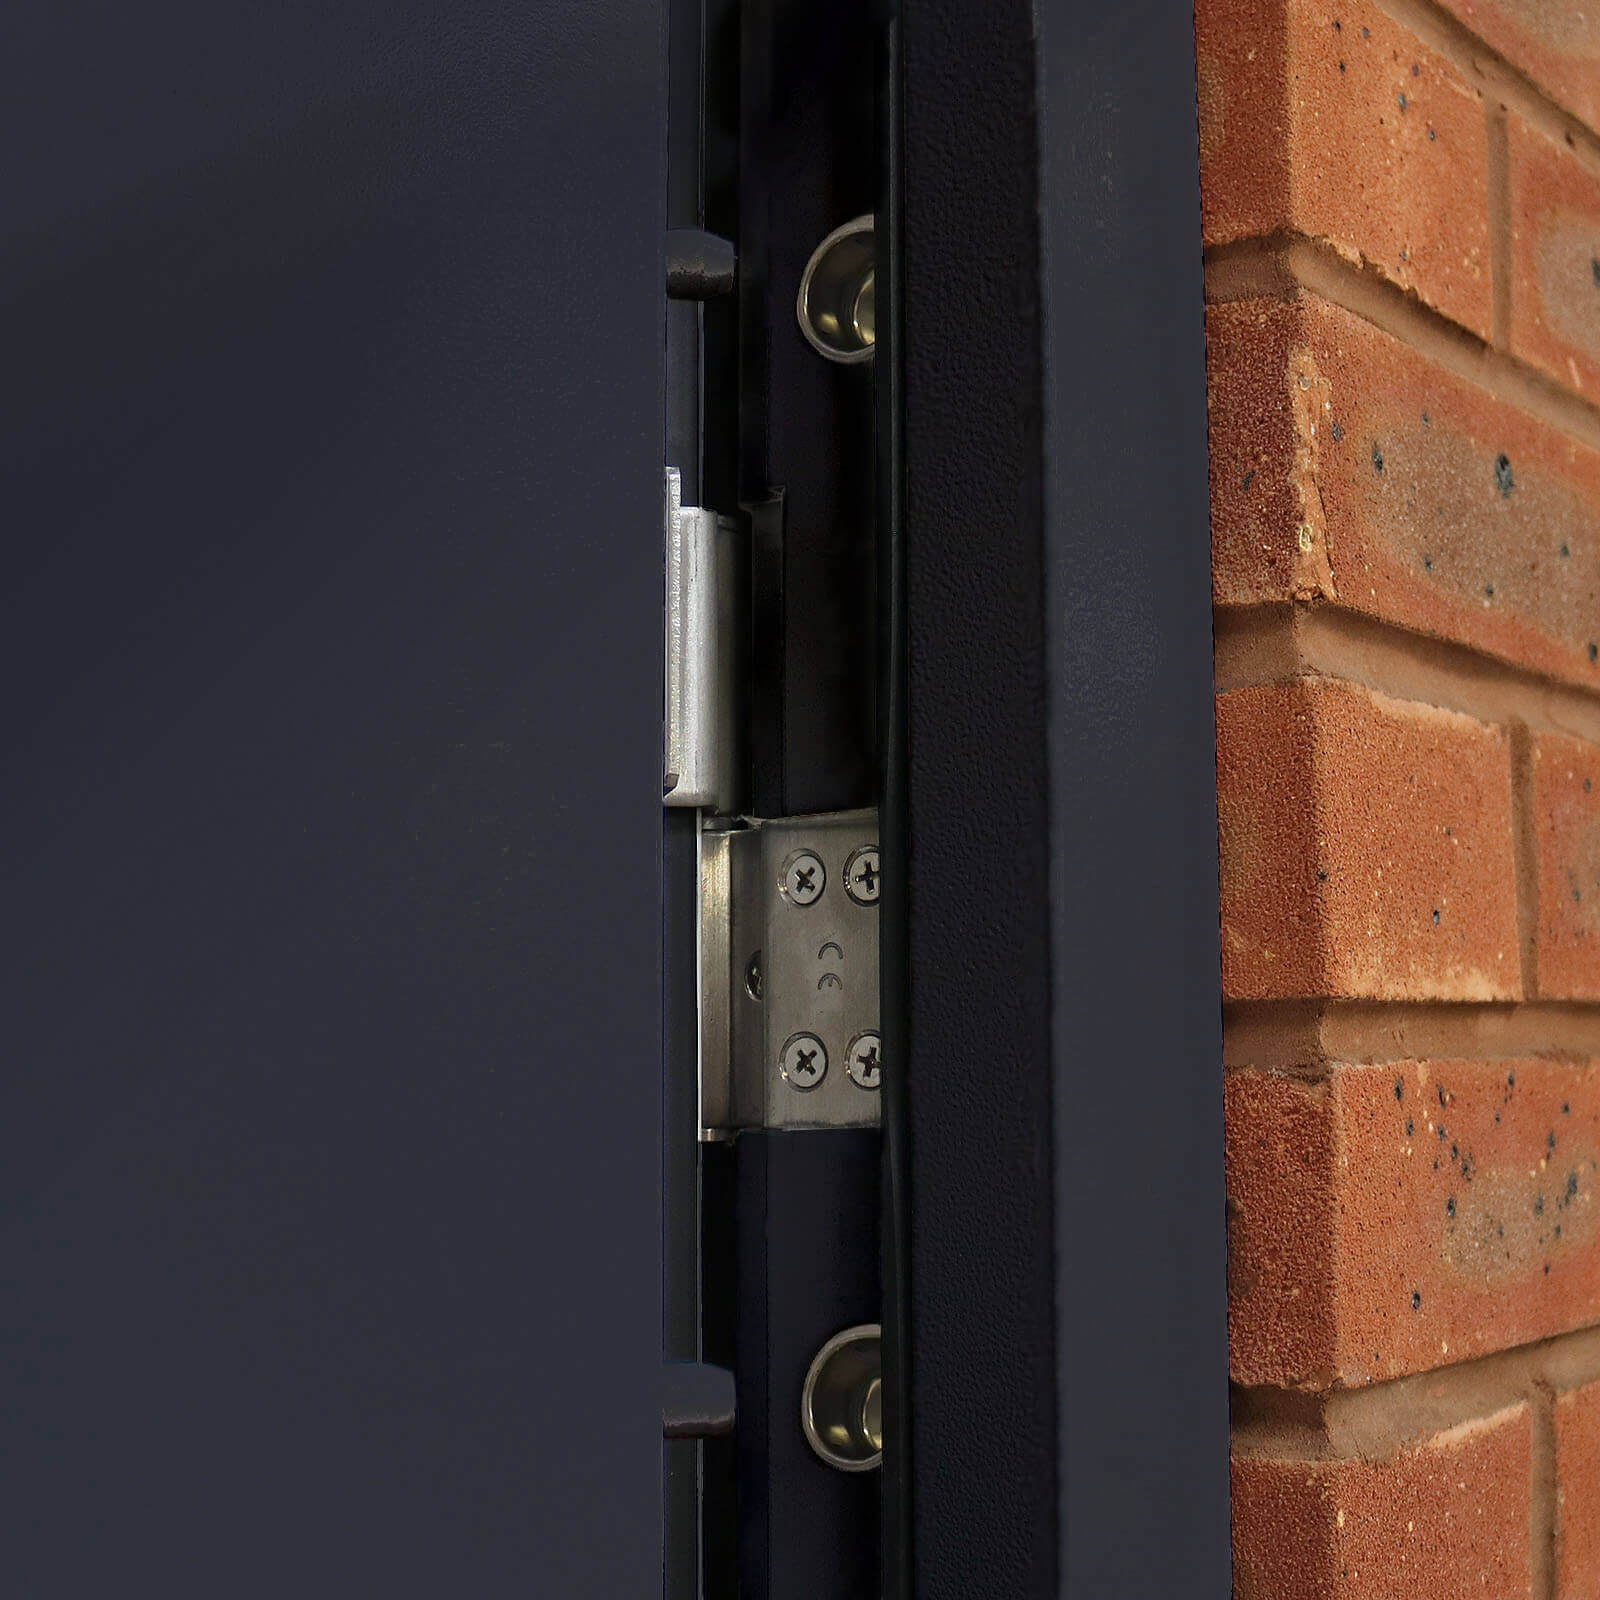 Security Steel Door Ultra Duty Latham S Steel Doors